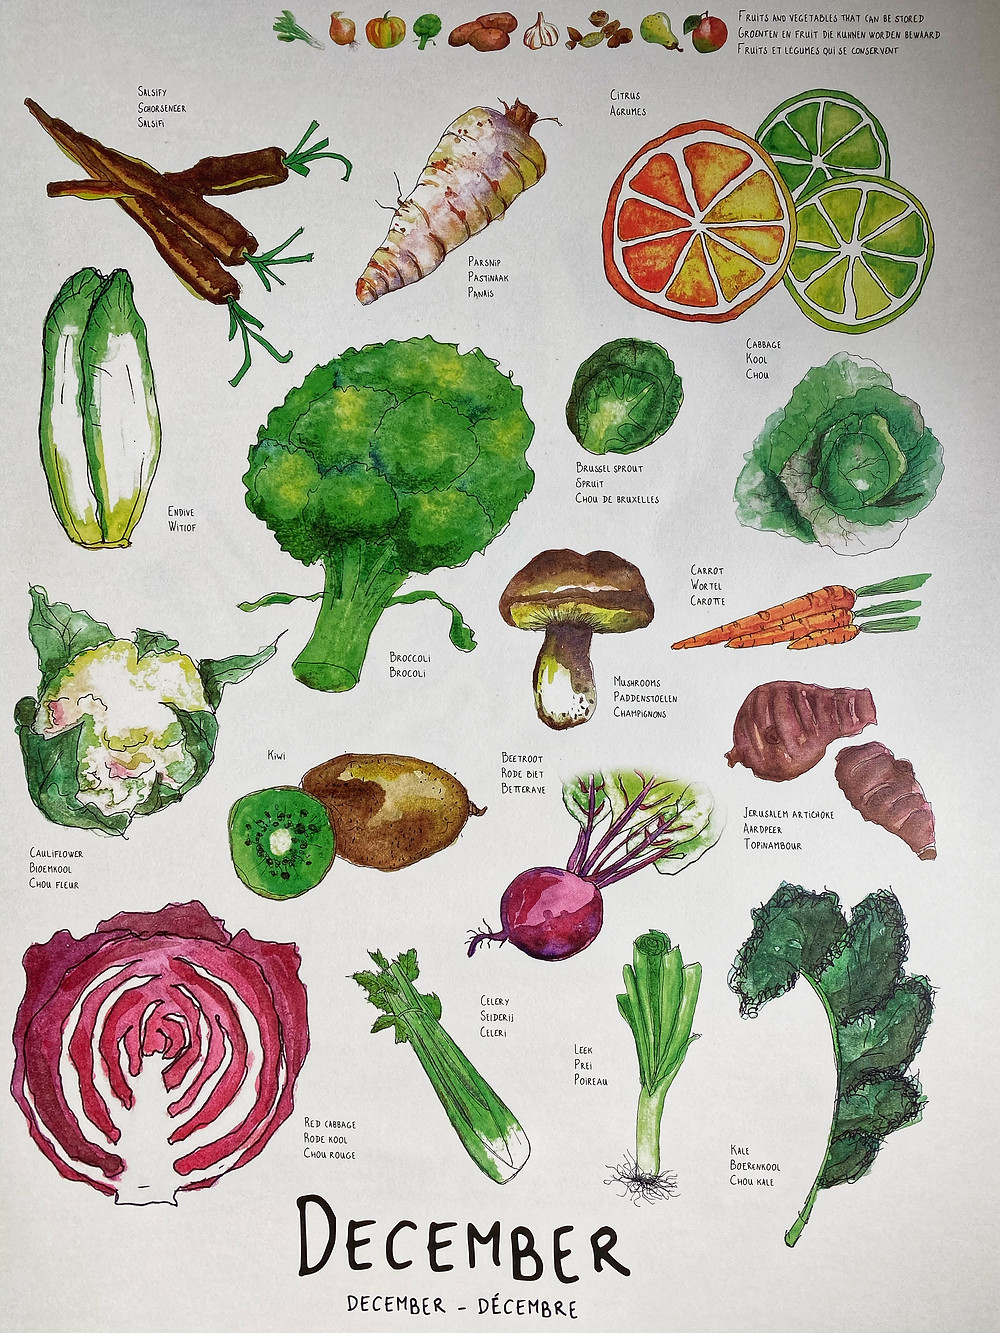 Water colour images of seasonal produce in Central Europe for December. Credit: www.griveau.net